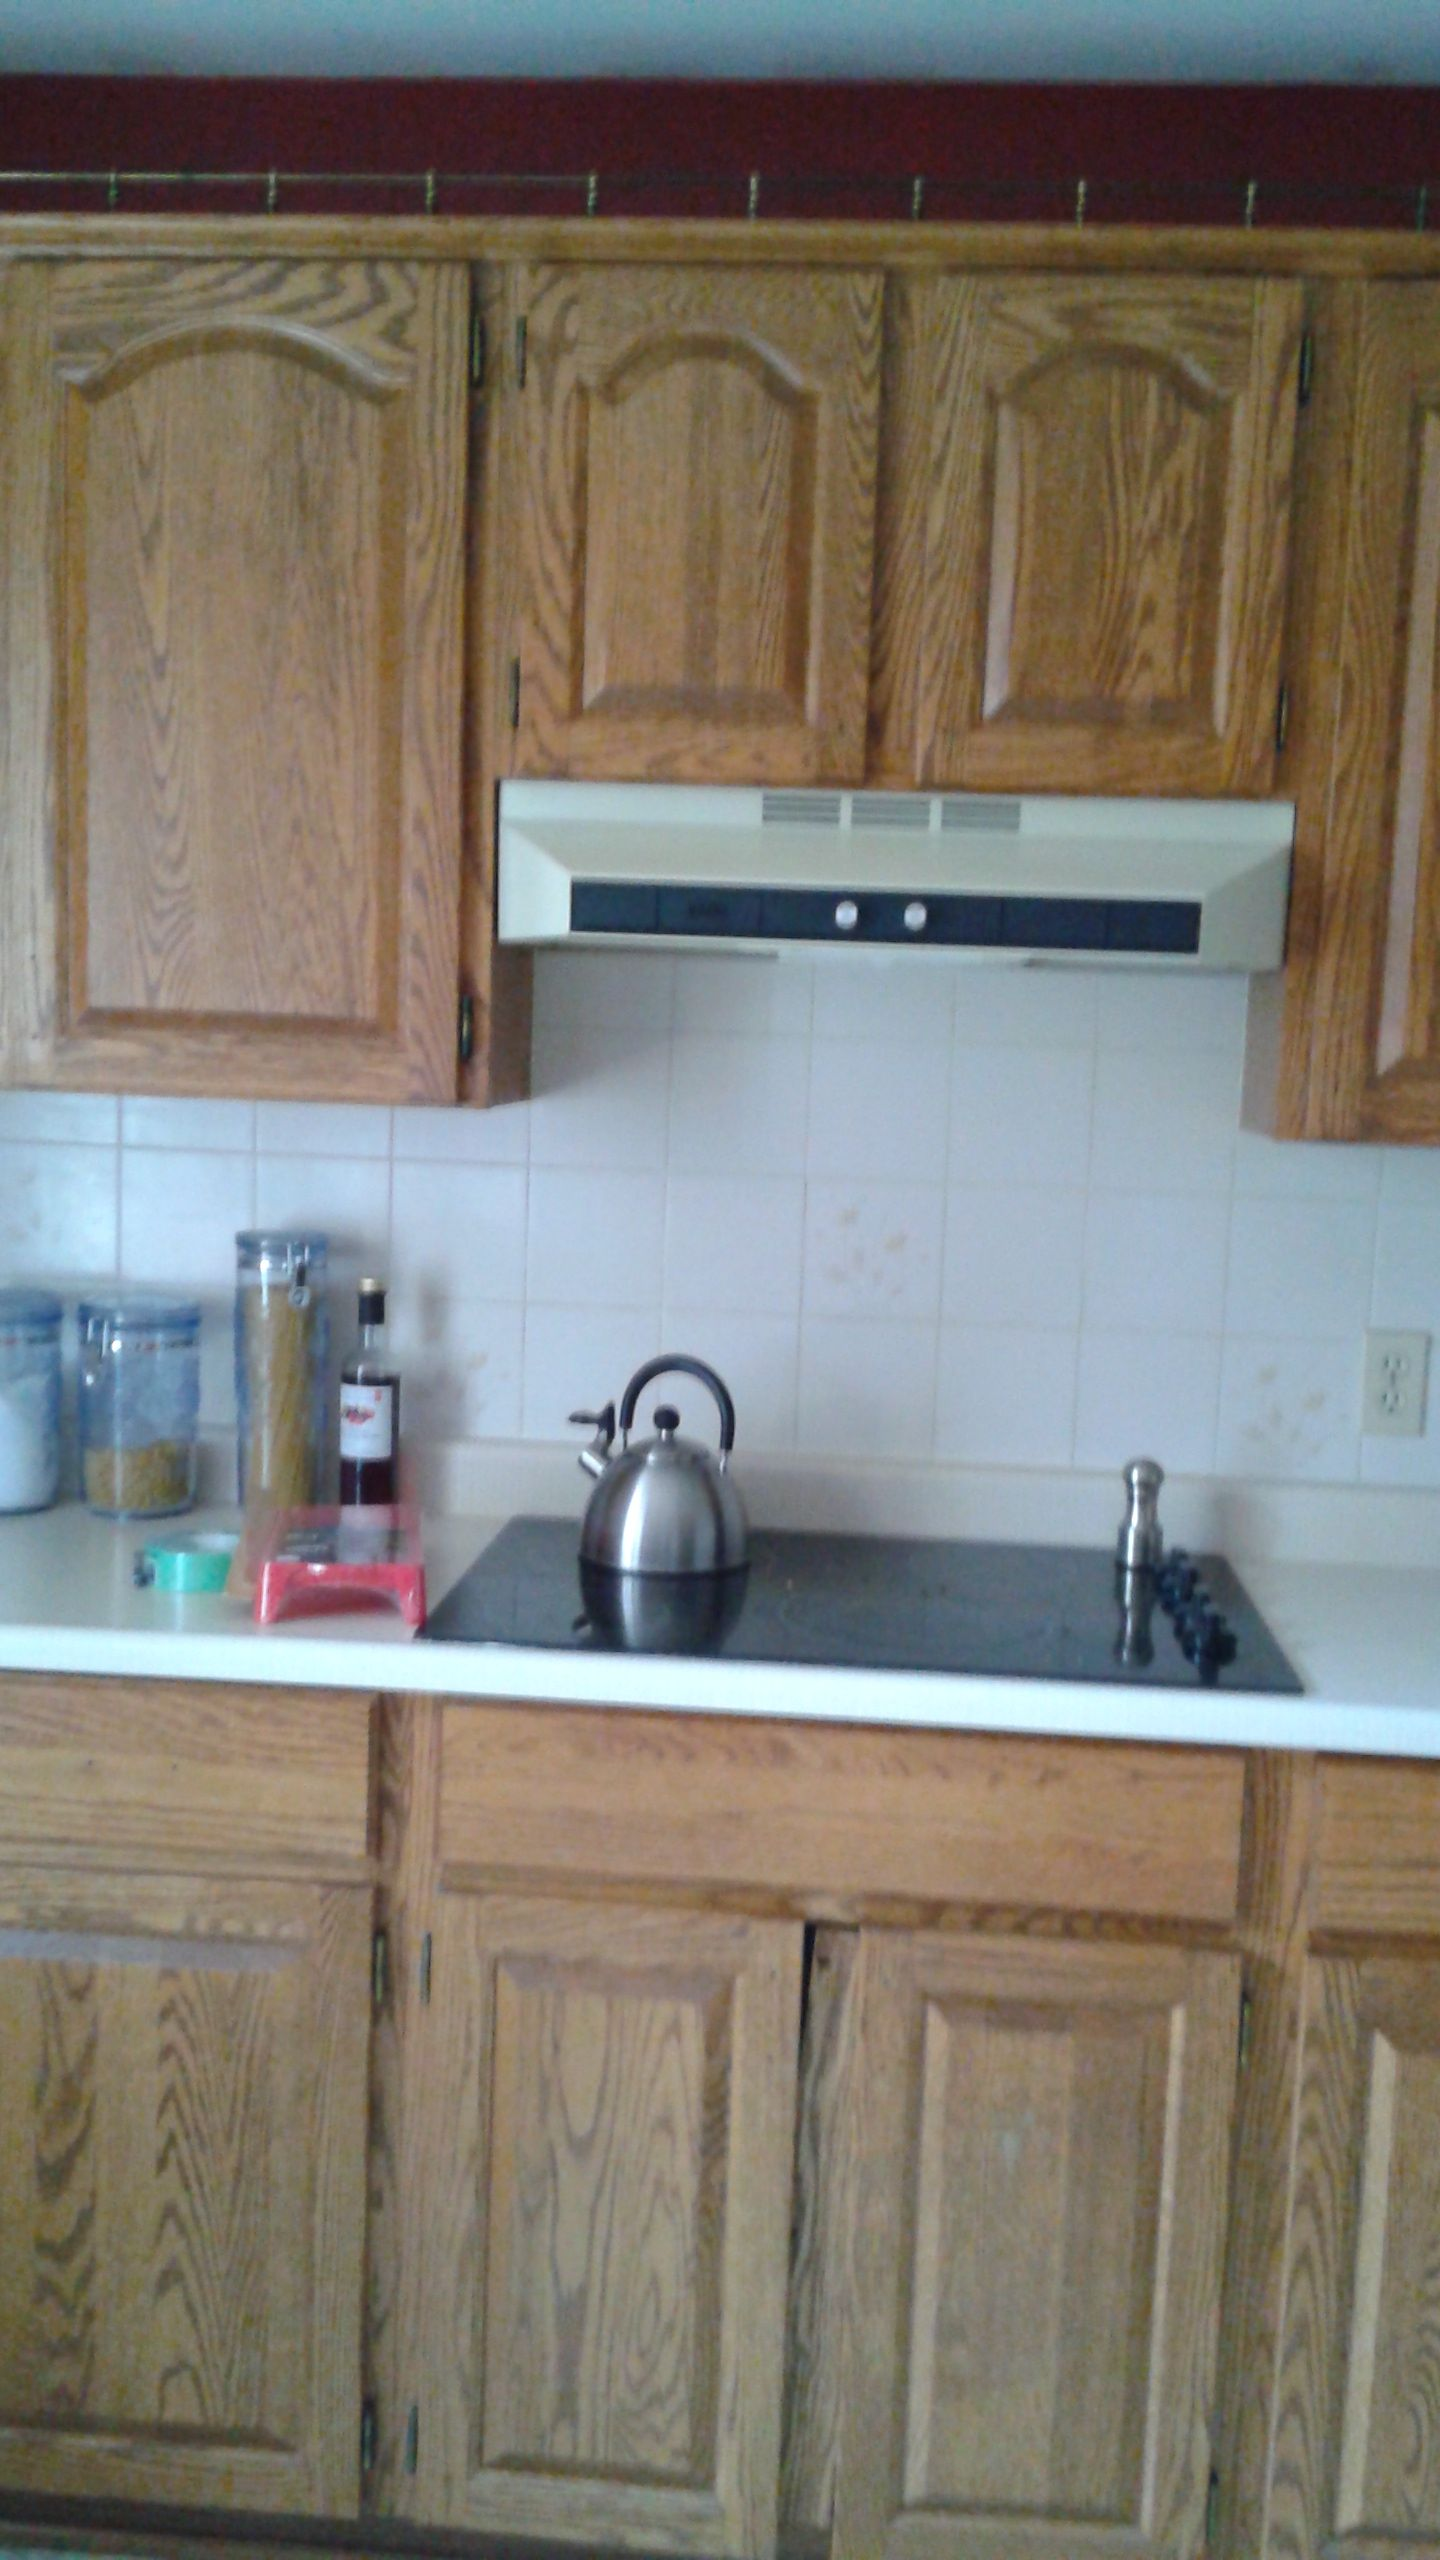 Kitchen Reno On A Budget 1980 S Oak Cupboard S I Primed Everything Cabinets Ceramic Tiles Countertops With S Kitchen Decor Painting Oak Cabinets Kitchen